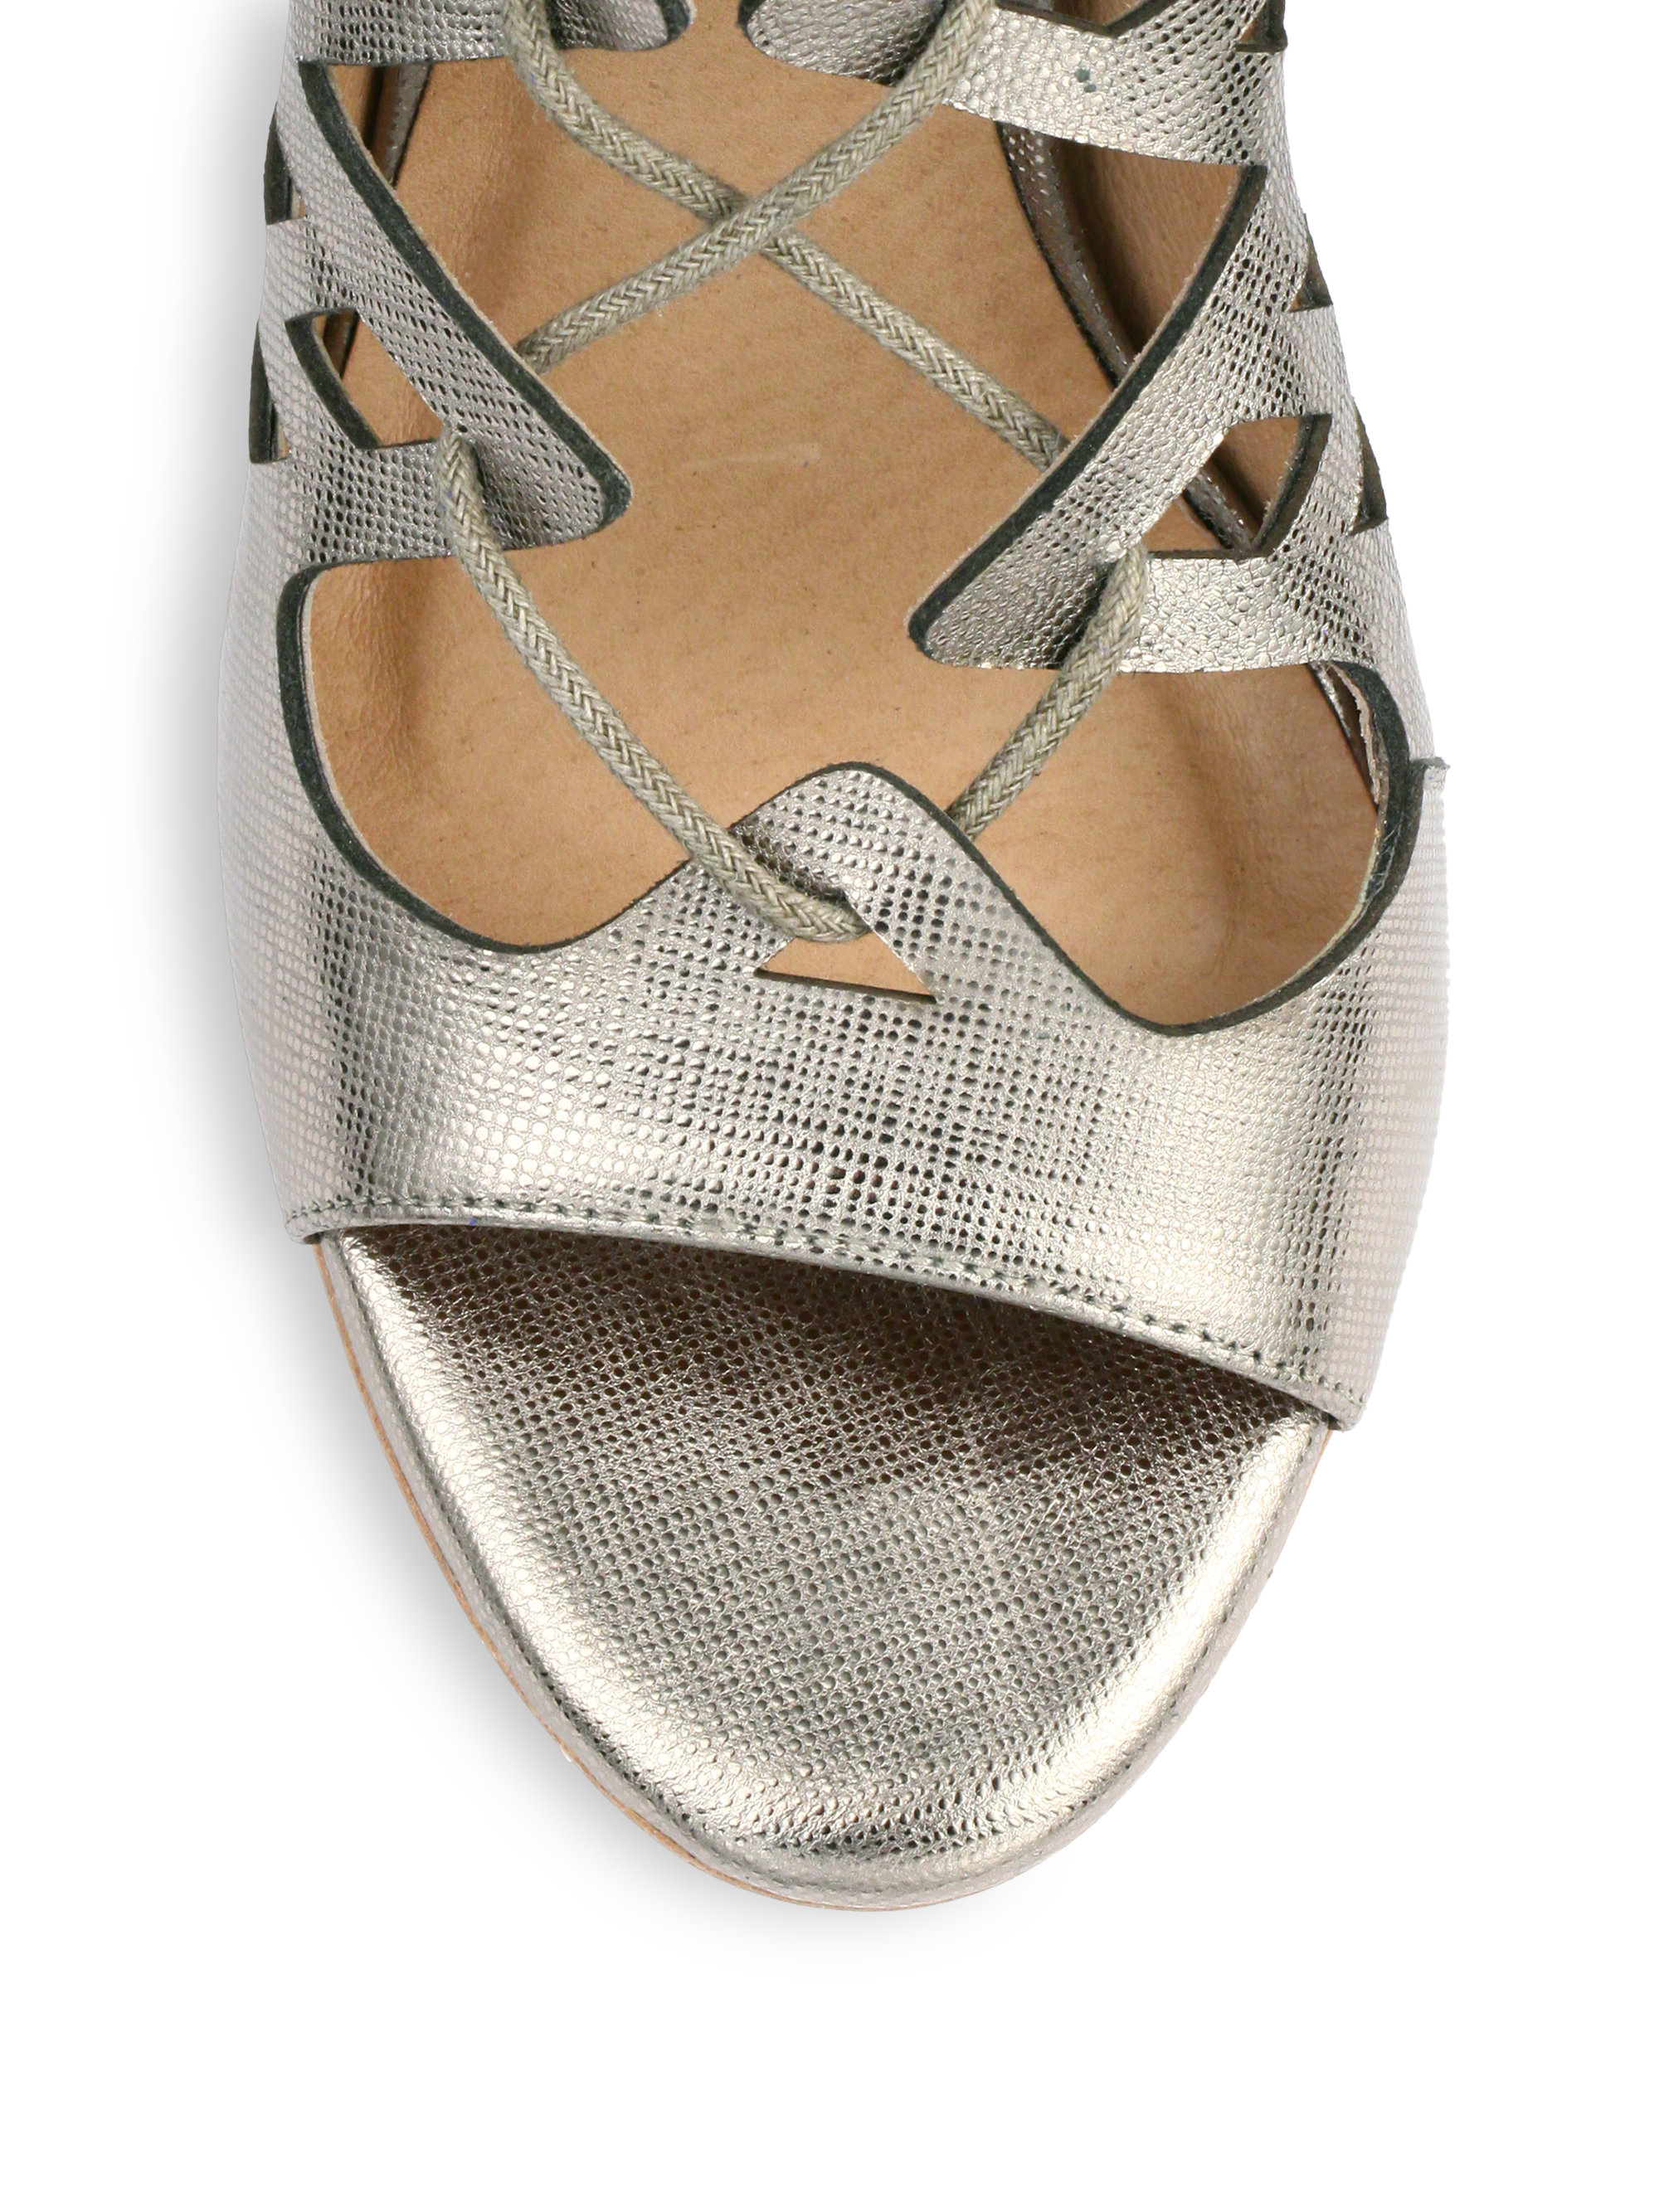 c0d8a79fc050 Lyst - Joie Quinn Metallic Leather Lace-up Sandals in Metallic